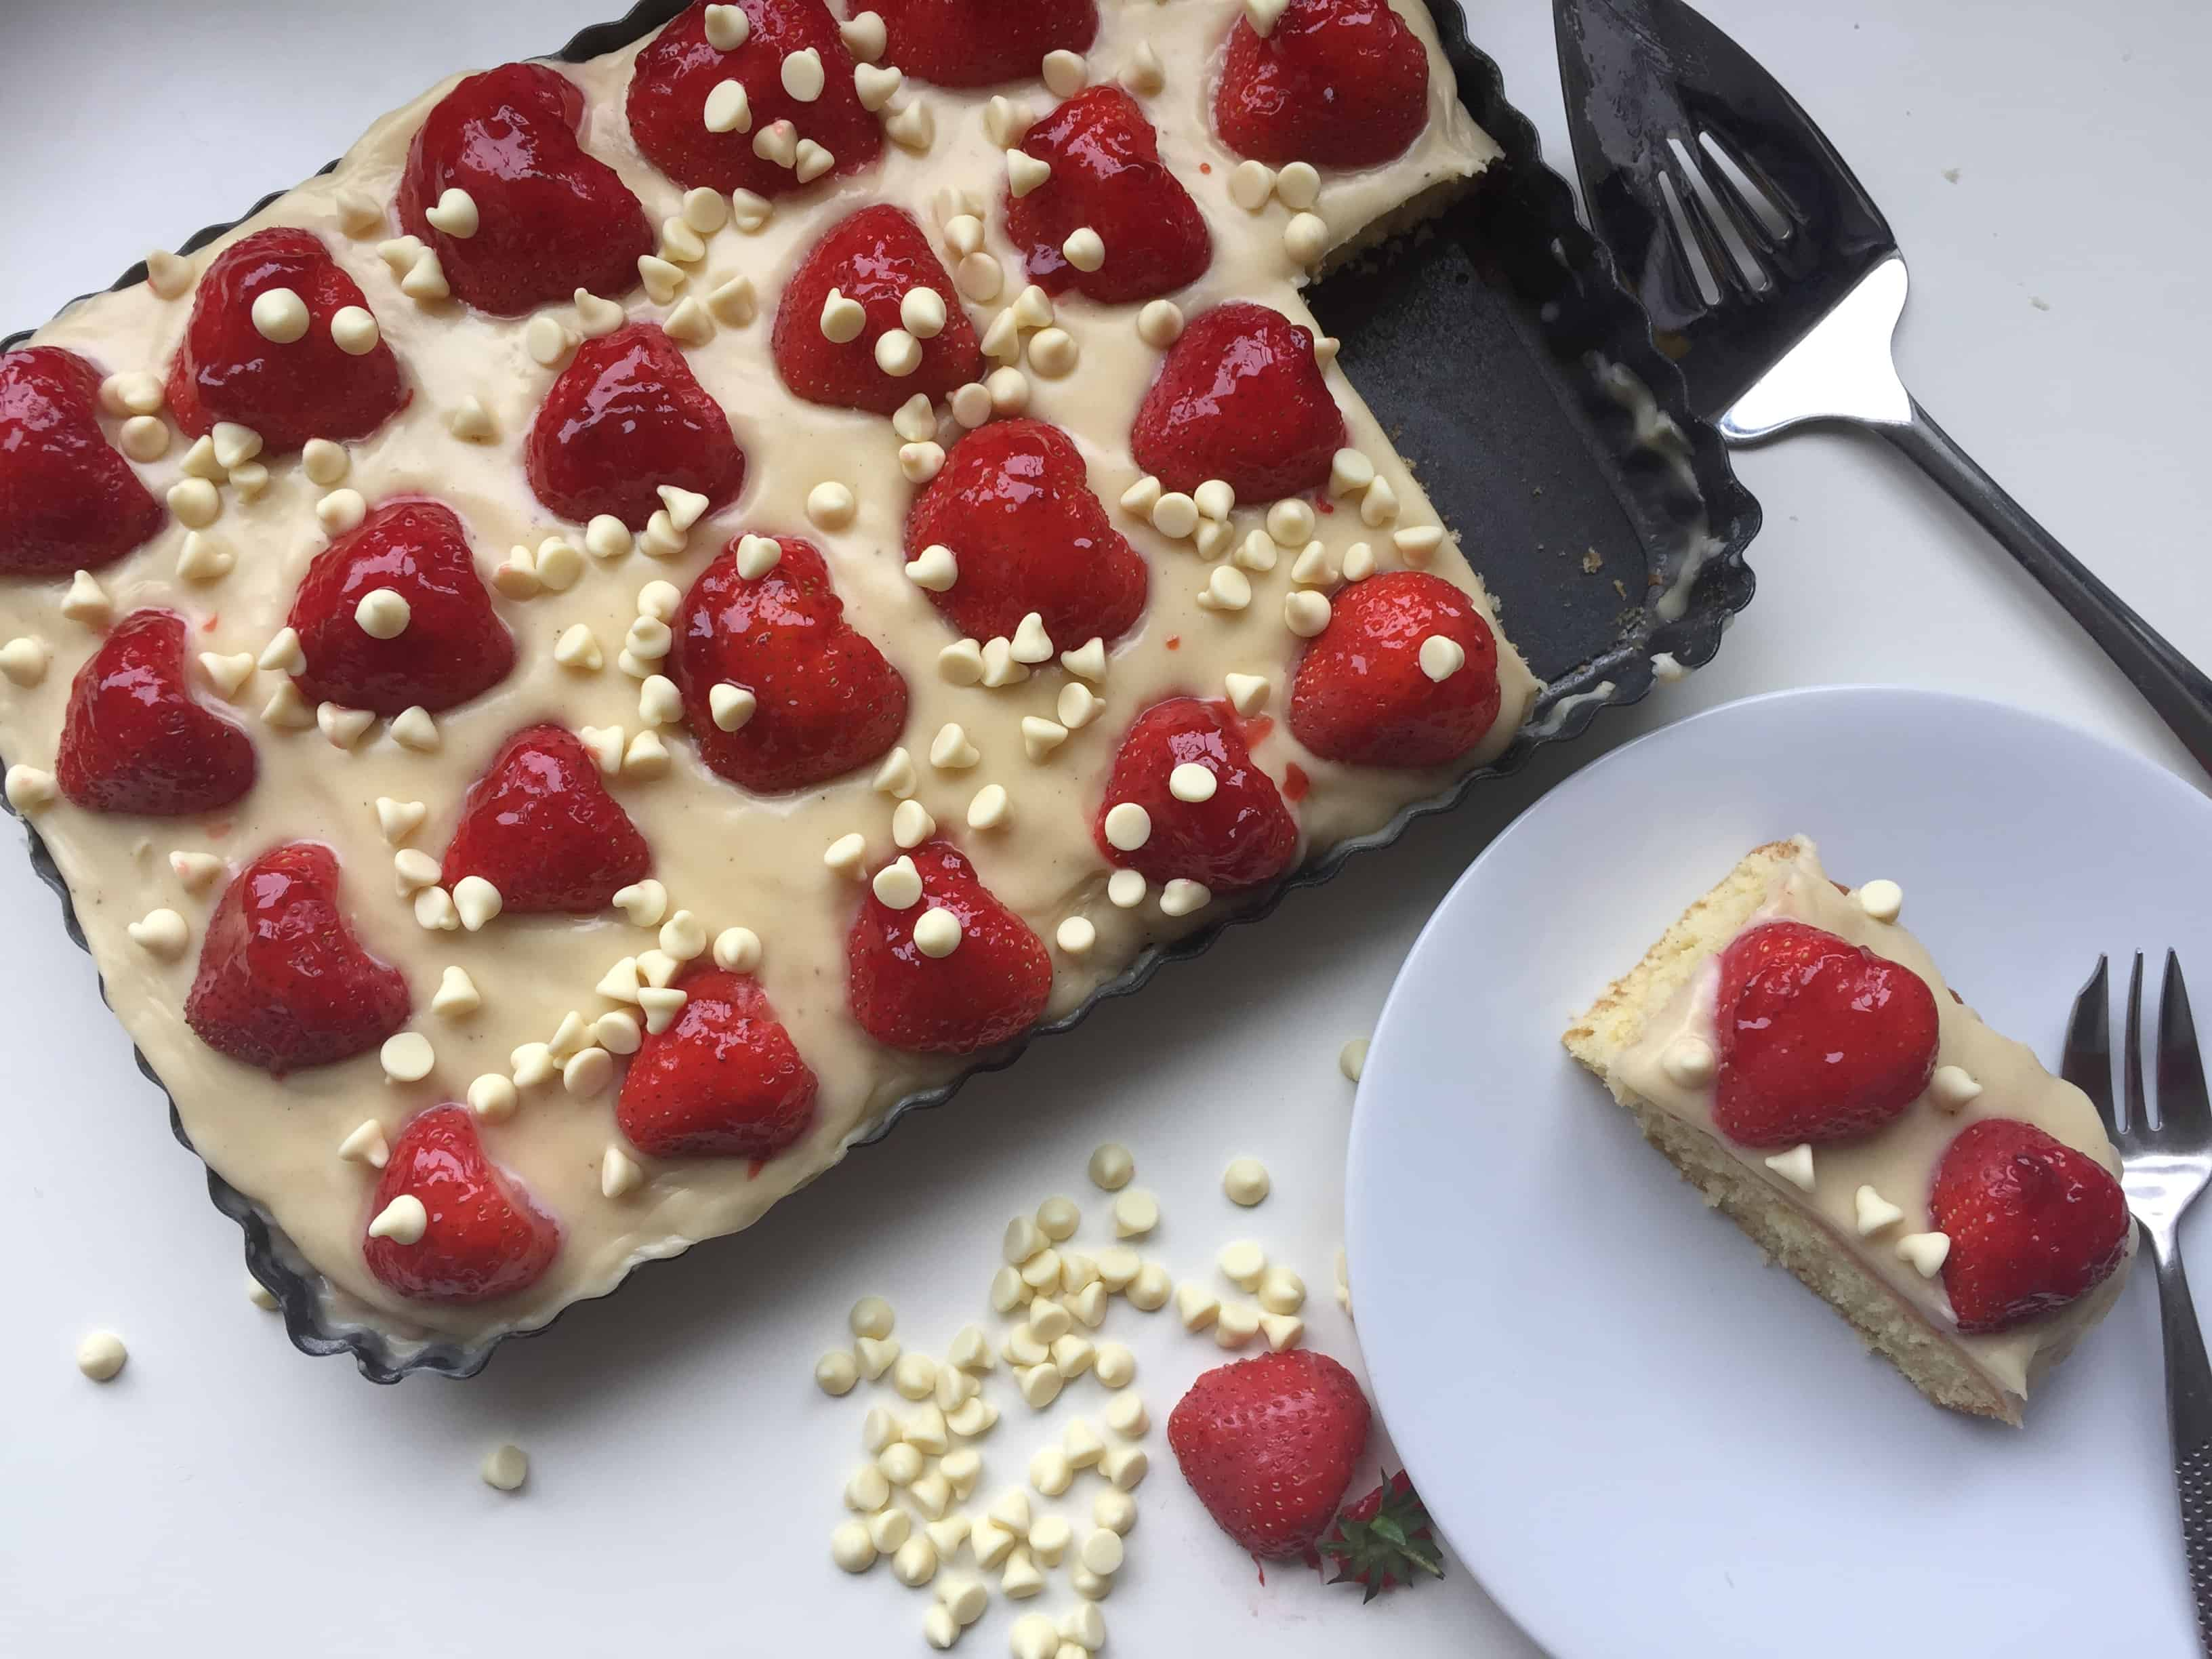 overhead shot of vanilla sheet cake topped with a white chocolate frosting, fresh strawberries and white chocolate chips.